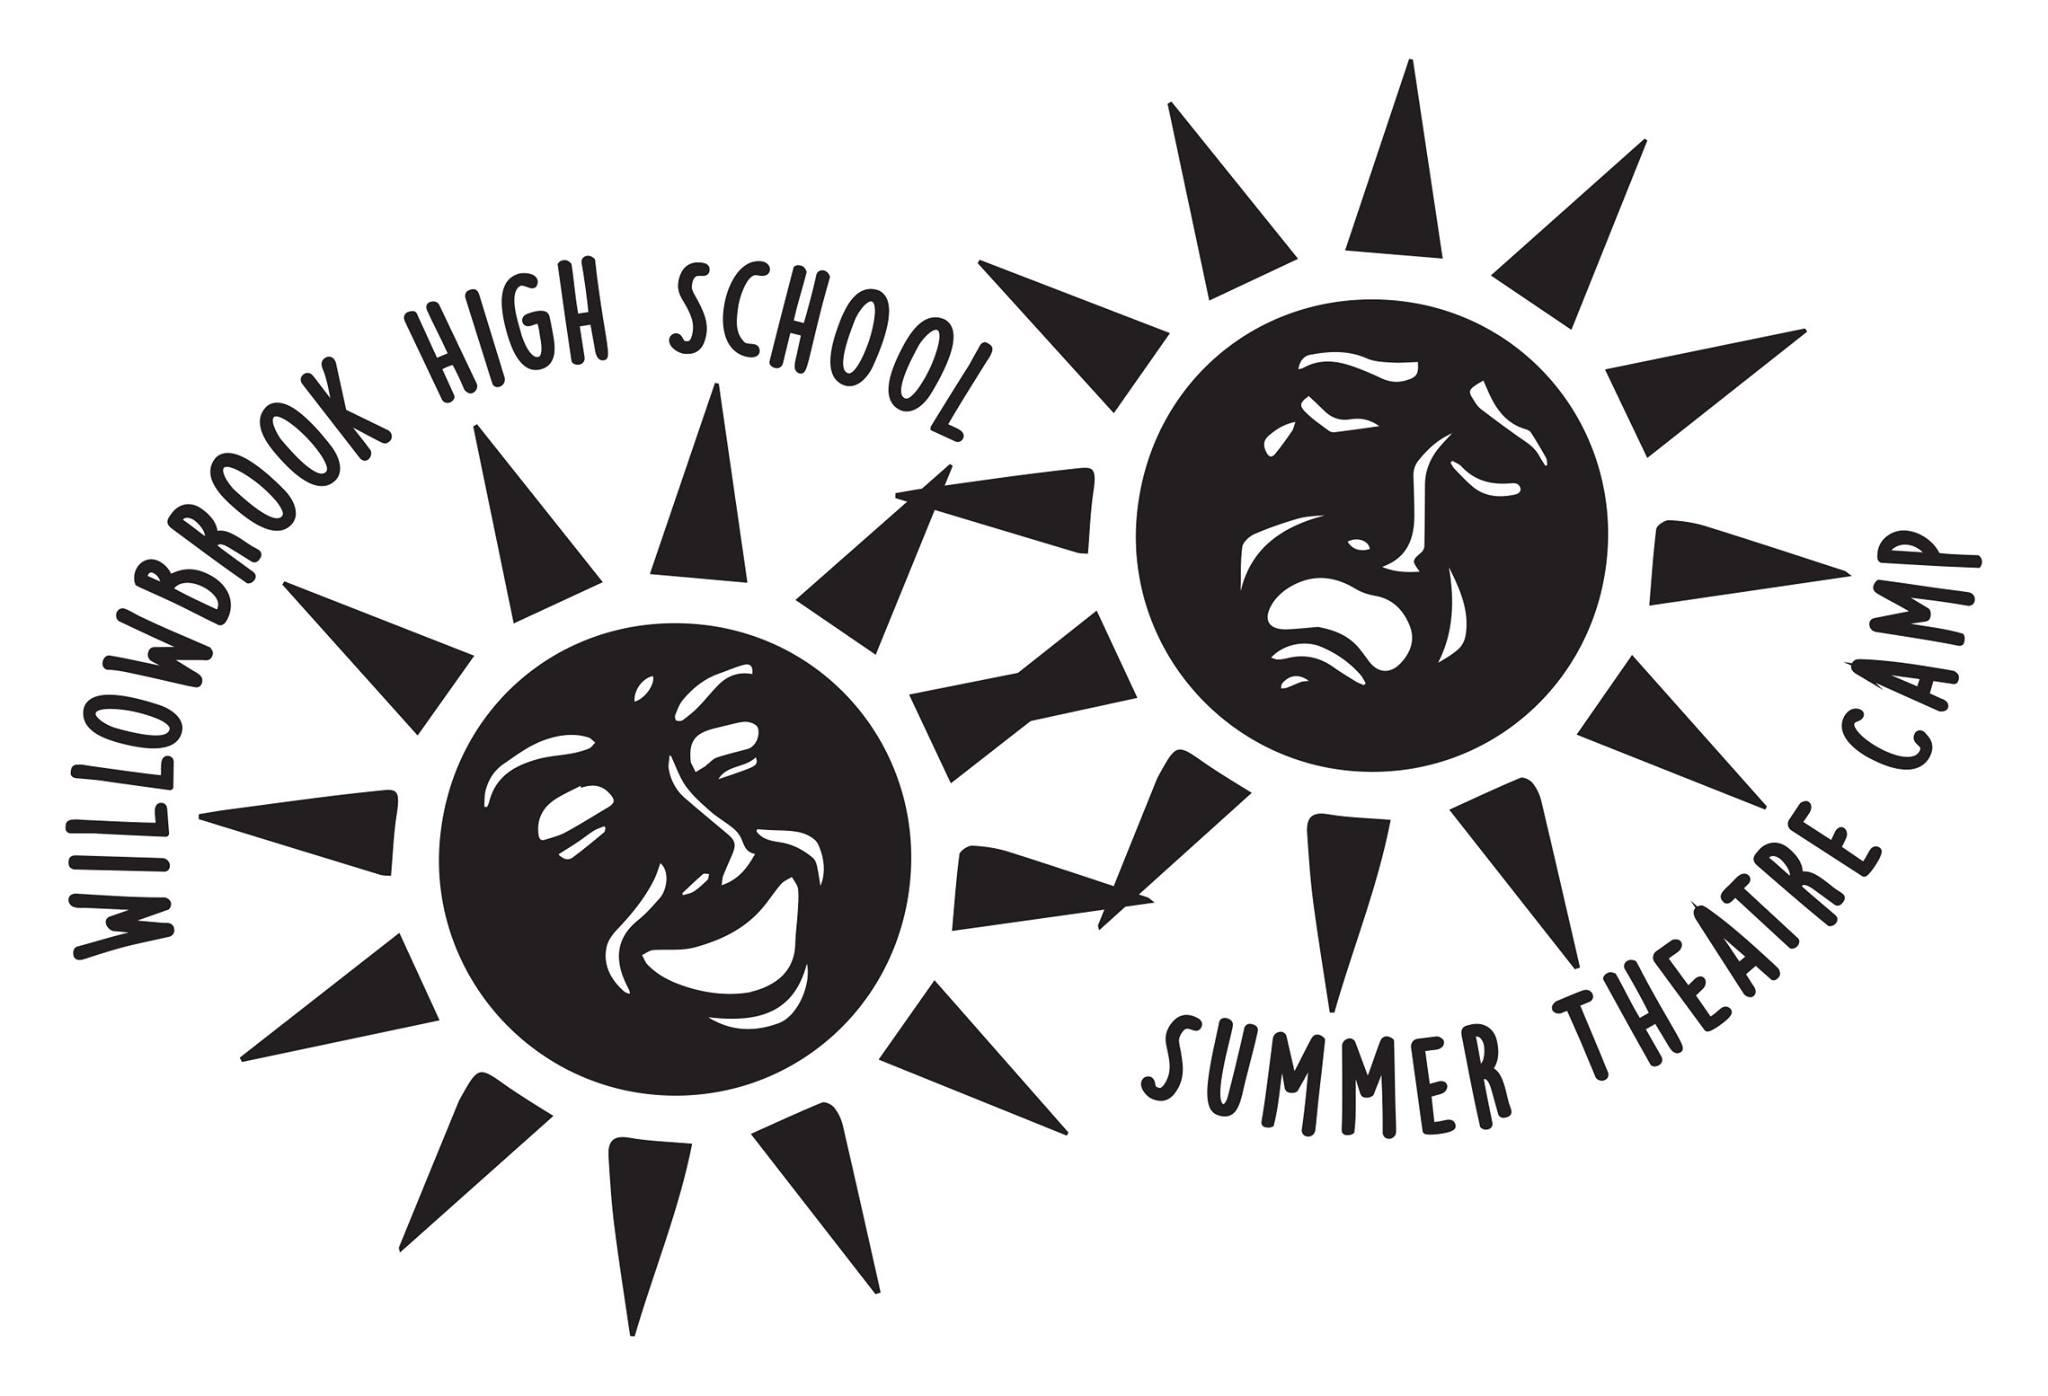 Willowbrook to host Summer Theatre Camp